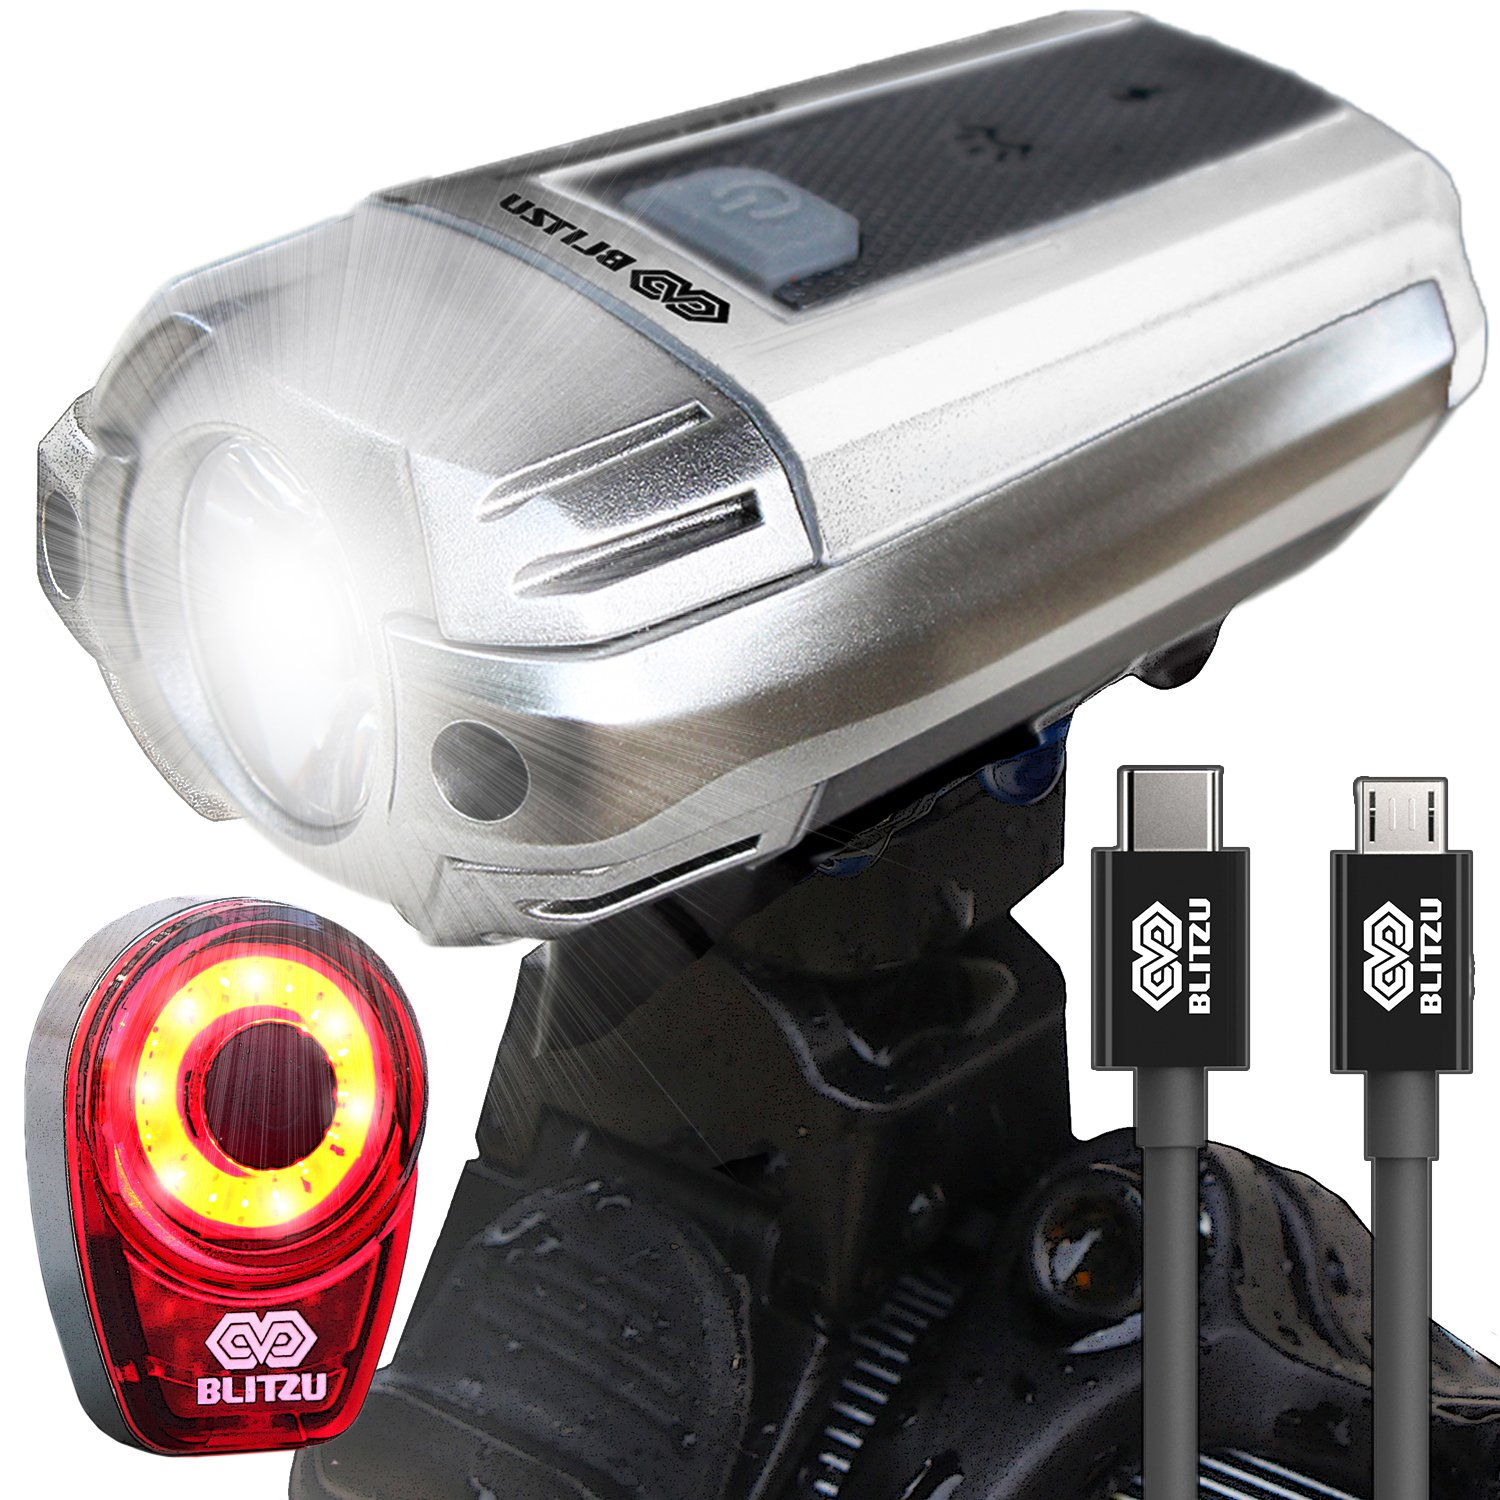 BIG SALE 390 USB Rechargeable LED Bike Front Head Light Set Bicycle Tail Light